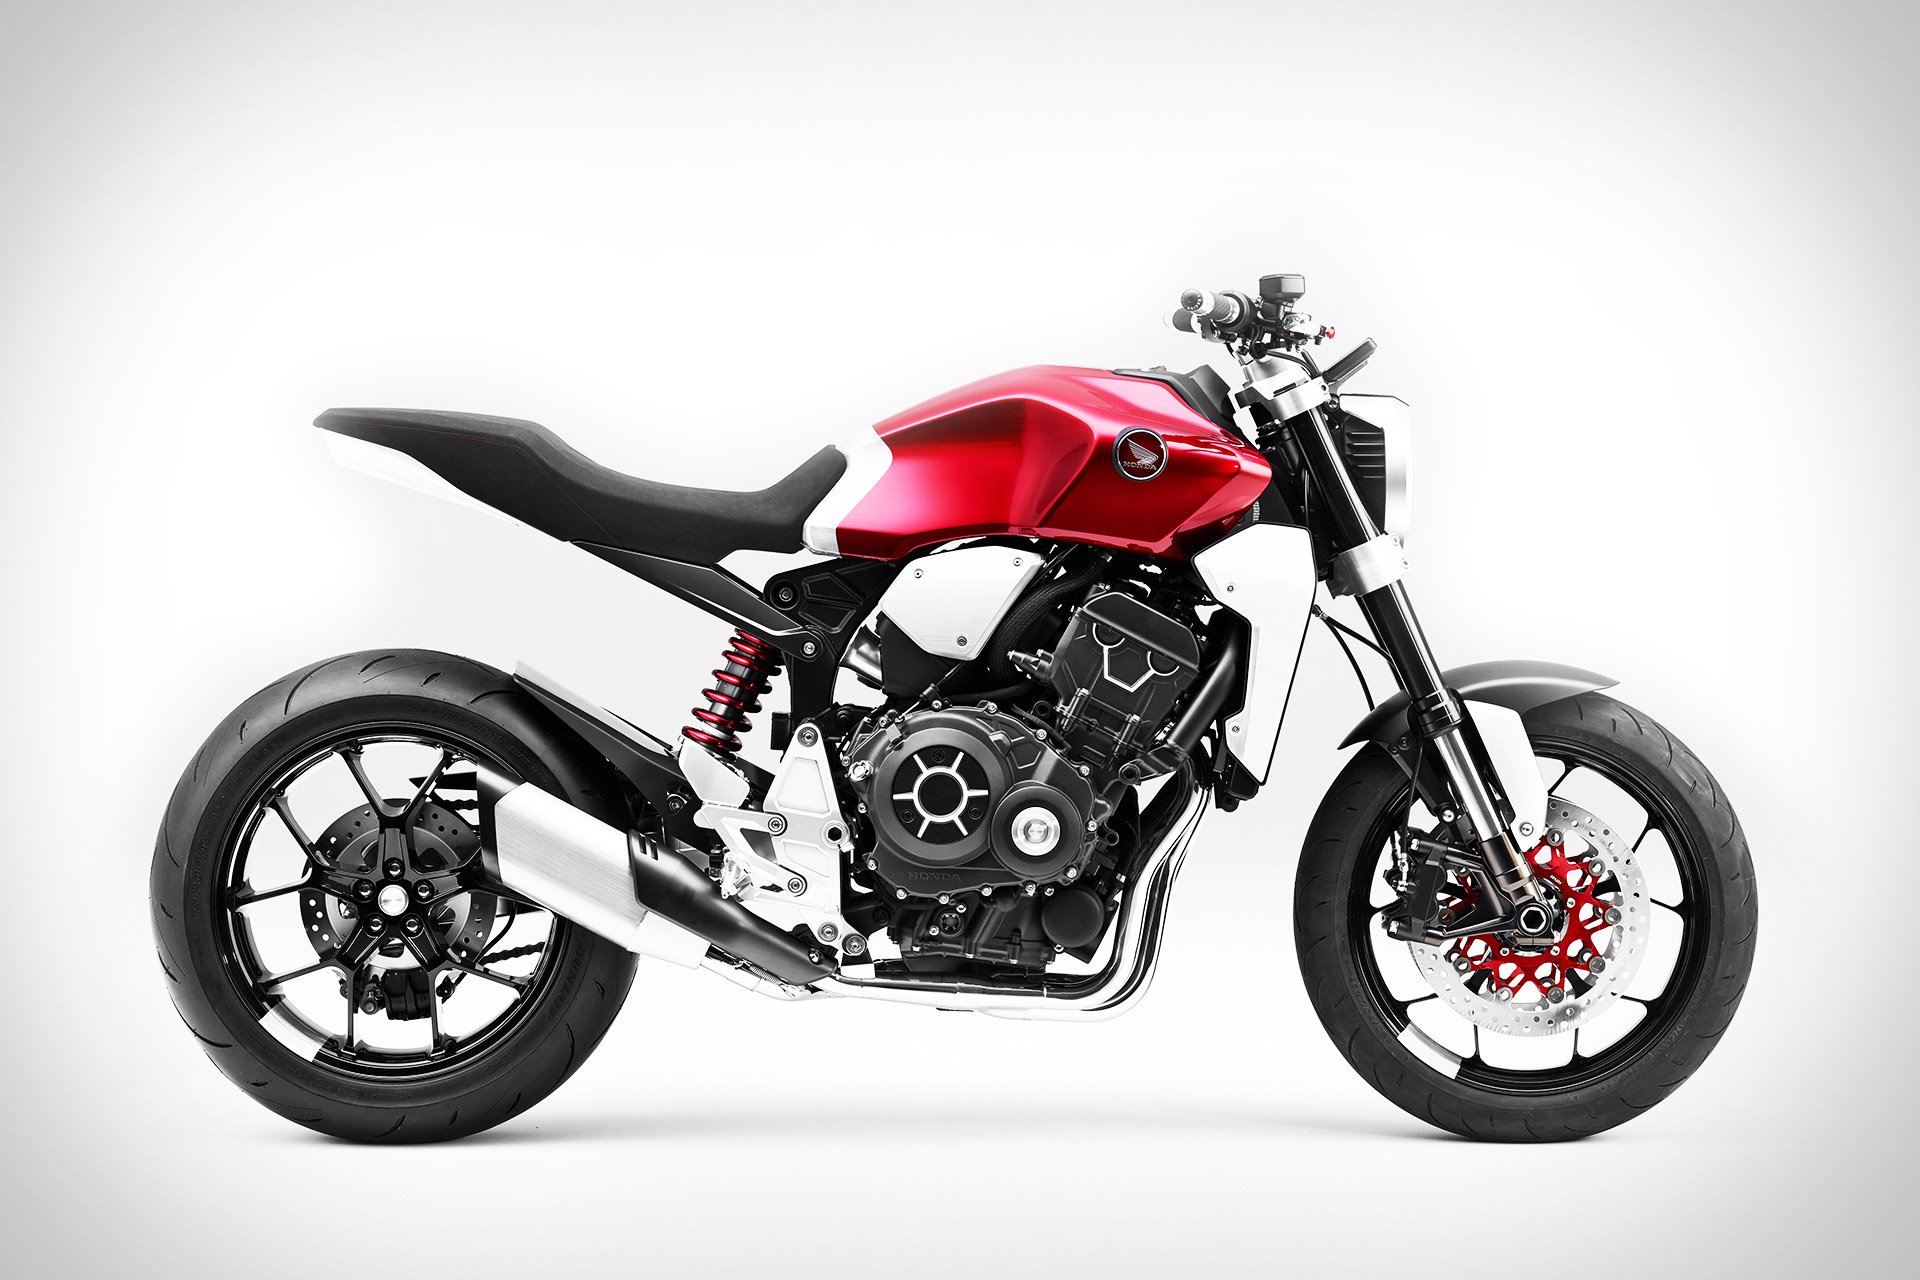 Honda Neo Sports Cafe Concept Motorcycle